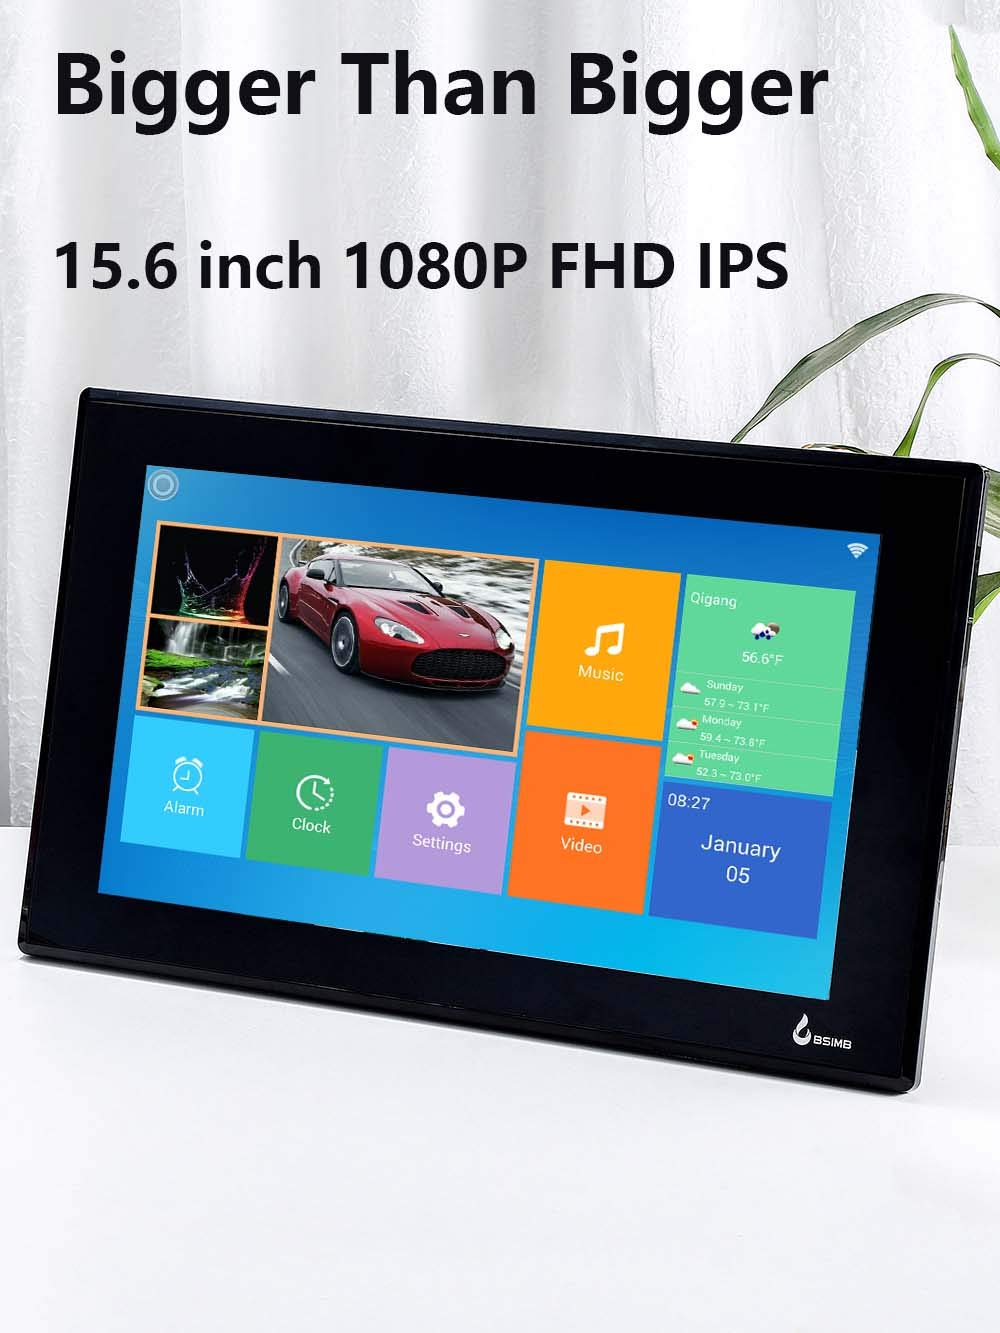 Black BSIMB 15.6 Inch WiFi Cloud Digital Photo Frame Digital Picture Frame Full HD 1920x1080 IPS Touch Screen 8GB Storage Share Photos and Videos from Smartphone App Twitter Facebook Email W02